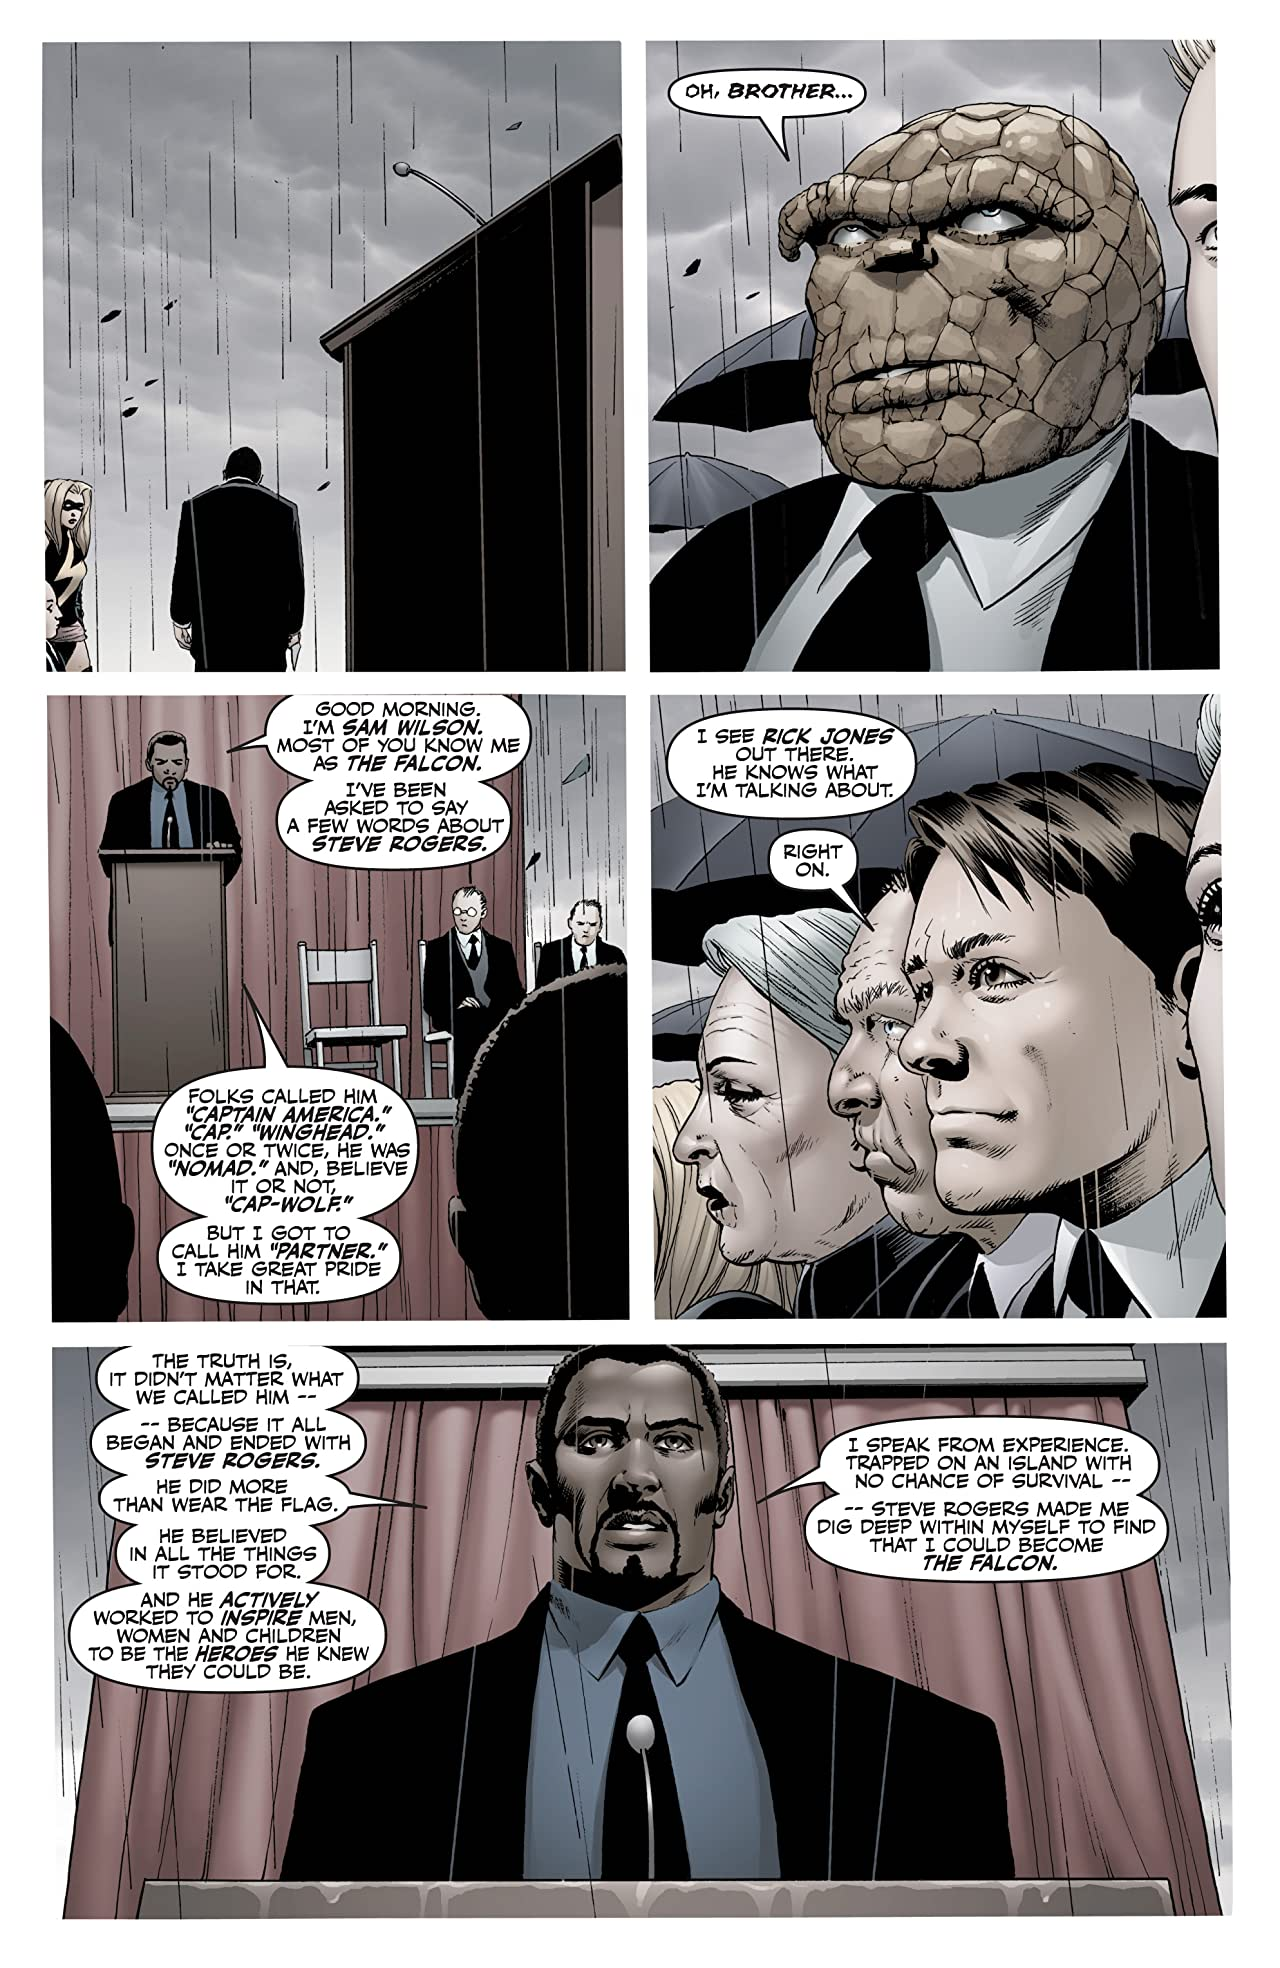 Fallen Son: Death of Captain America #5: Iron Man